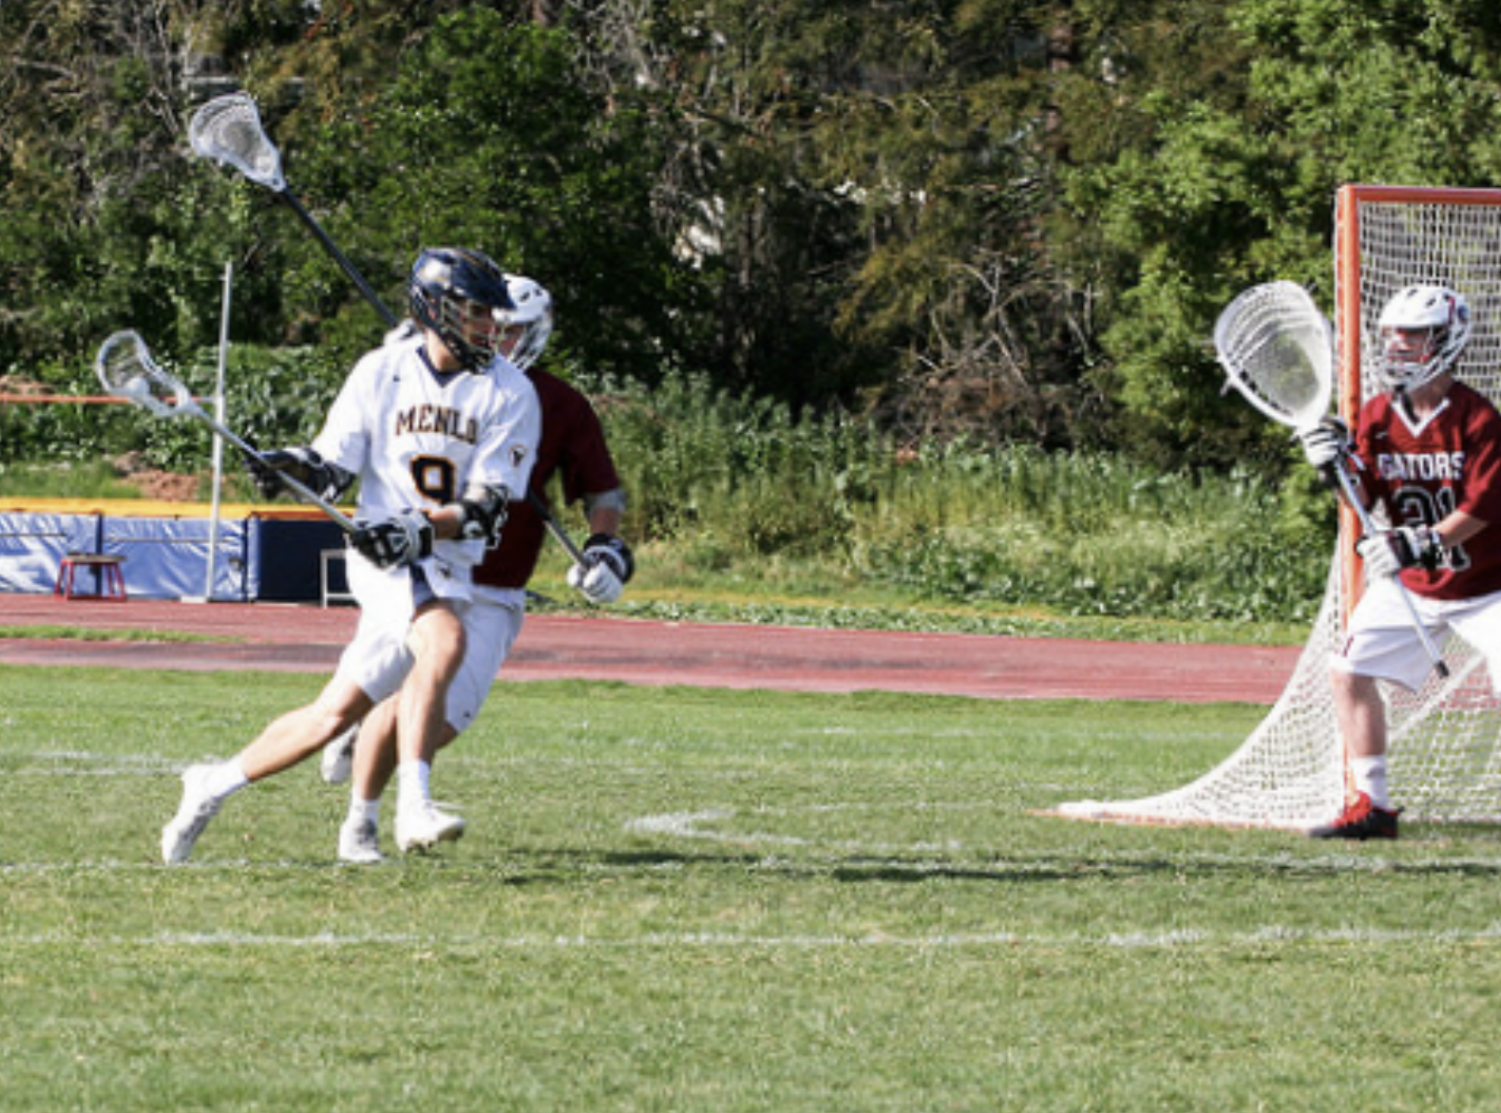 The Knights driving towards the goal in their 2018 game against Sacred Heart Prep. Photo courtesy of Pam Tso McKenney.